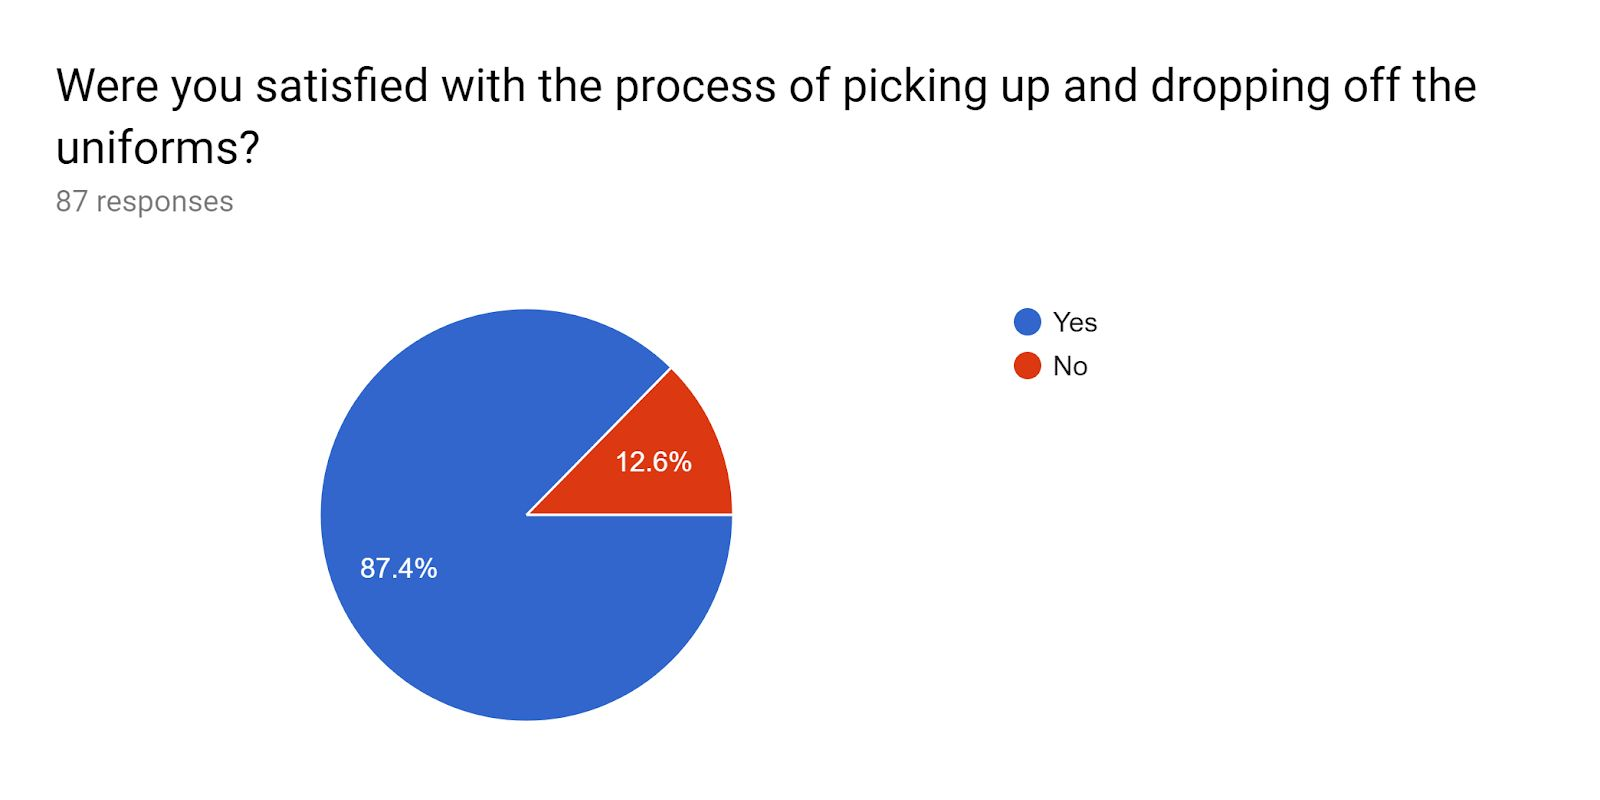 Uniform distribution satisfaction pie chart